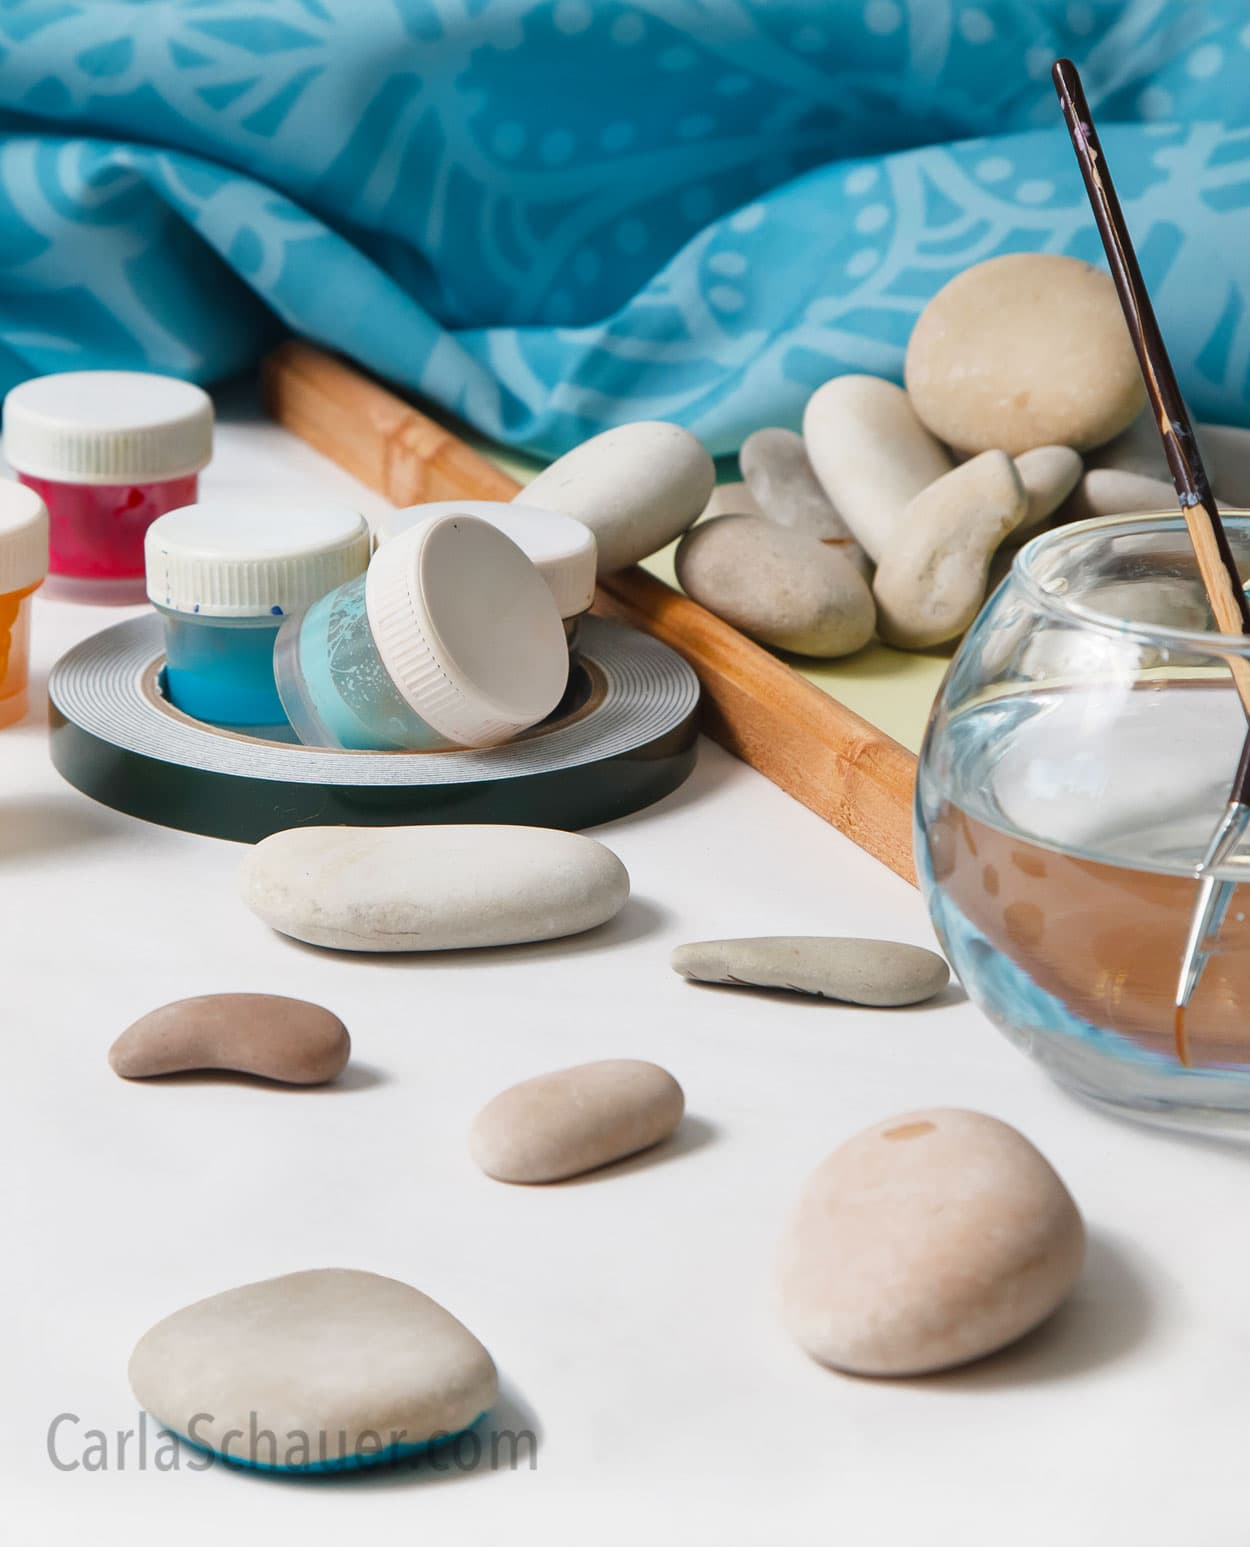 Smooth rocks, paint jars, and fishbowl with paintbrushes in water. Rock painting scene with teal fabric background.